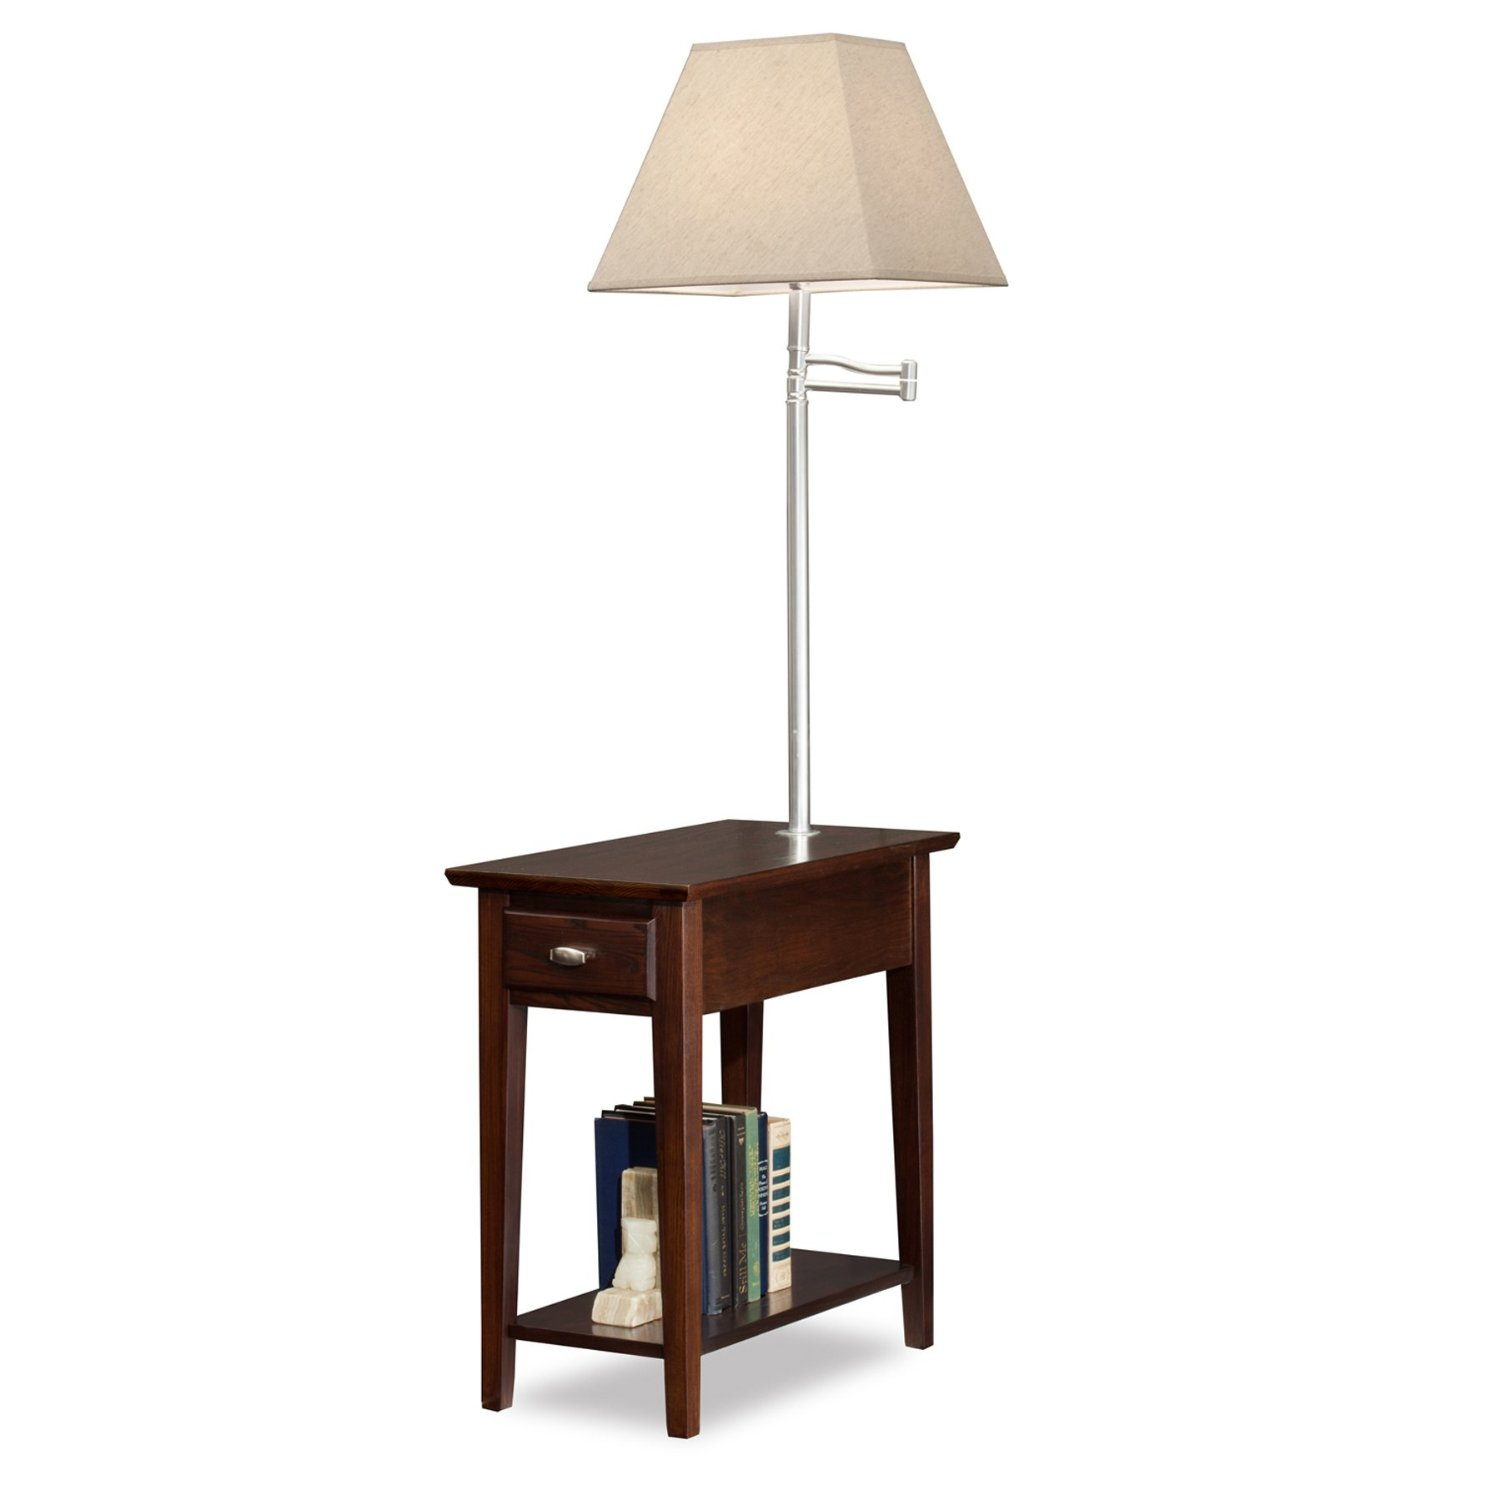 10 reasons to buy End tables with lamps attached | Warisan Lighting